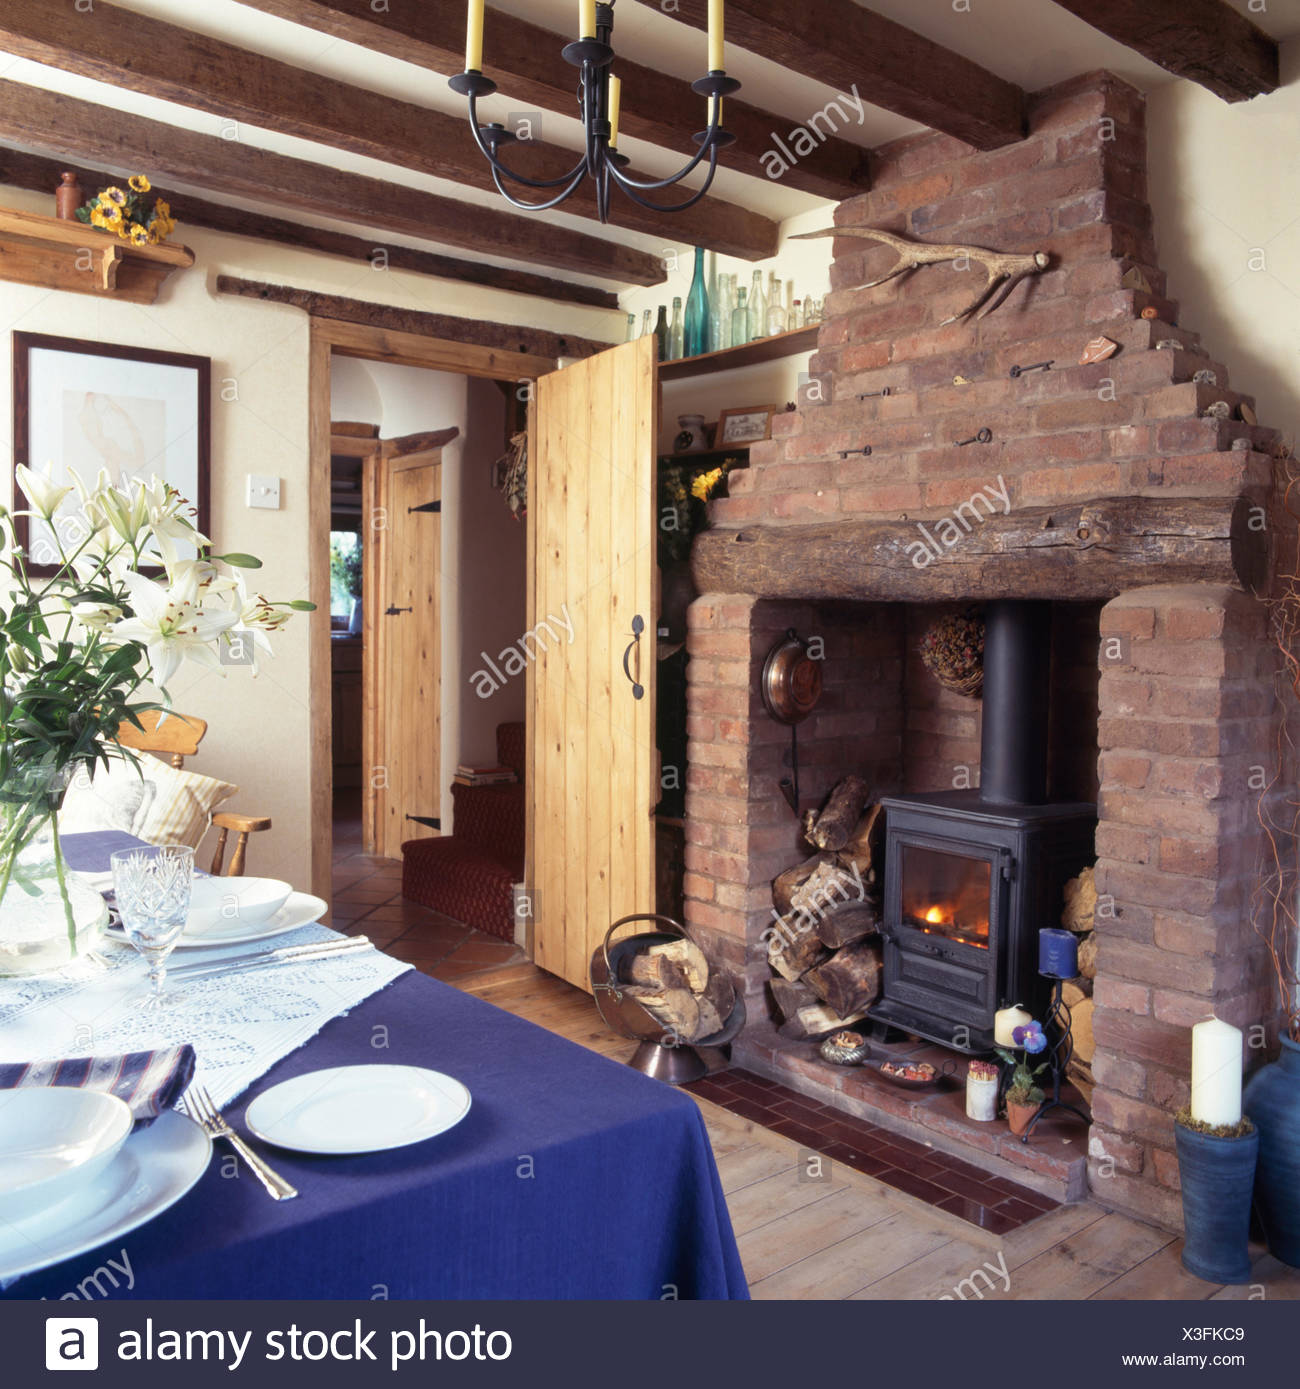 Wood Burning Stove In Exposed Brick Fireplace A Cottage Dining Room With Blue Cloth On Table Set For Lunch